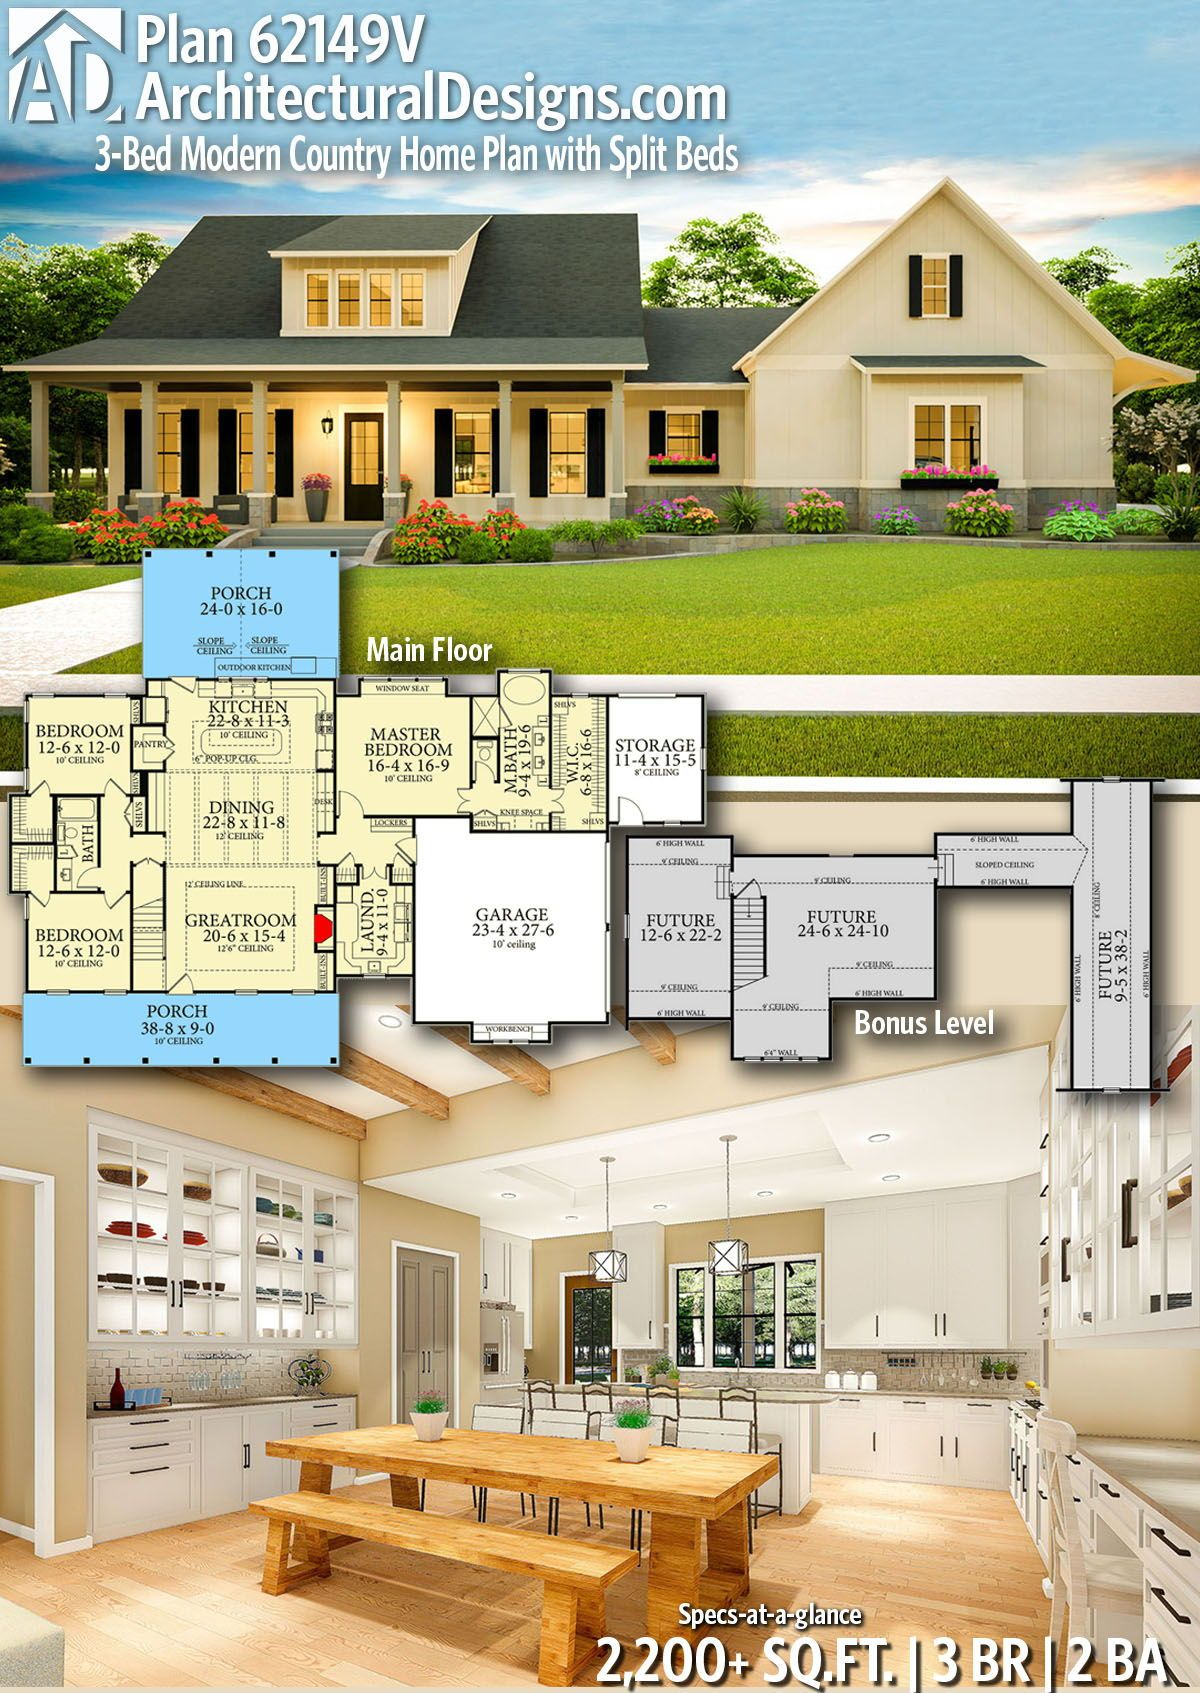 Plan 62149v 3 Bed Modern Country Home Plan With Split Beds Country House Plans House Plans Dream House Plans